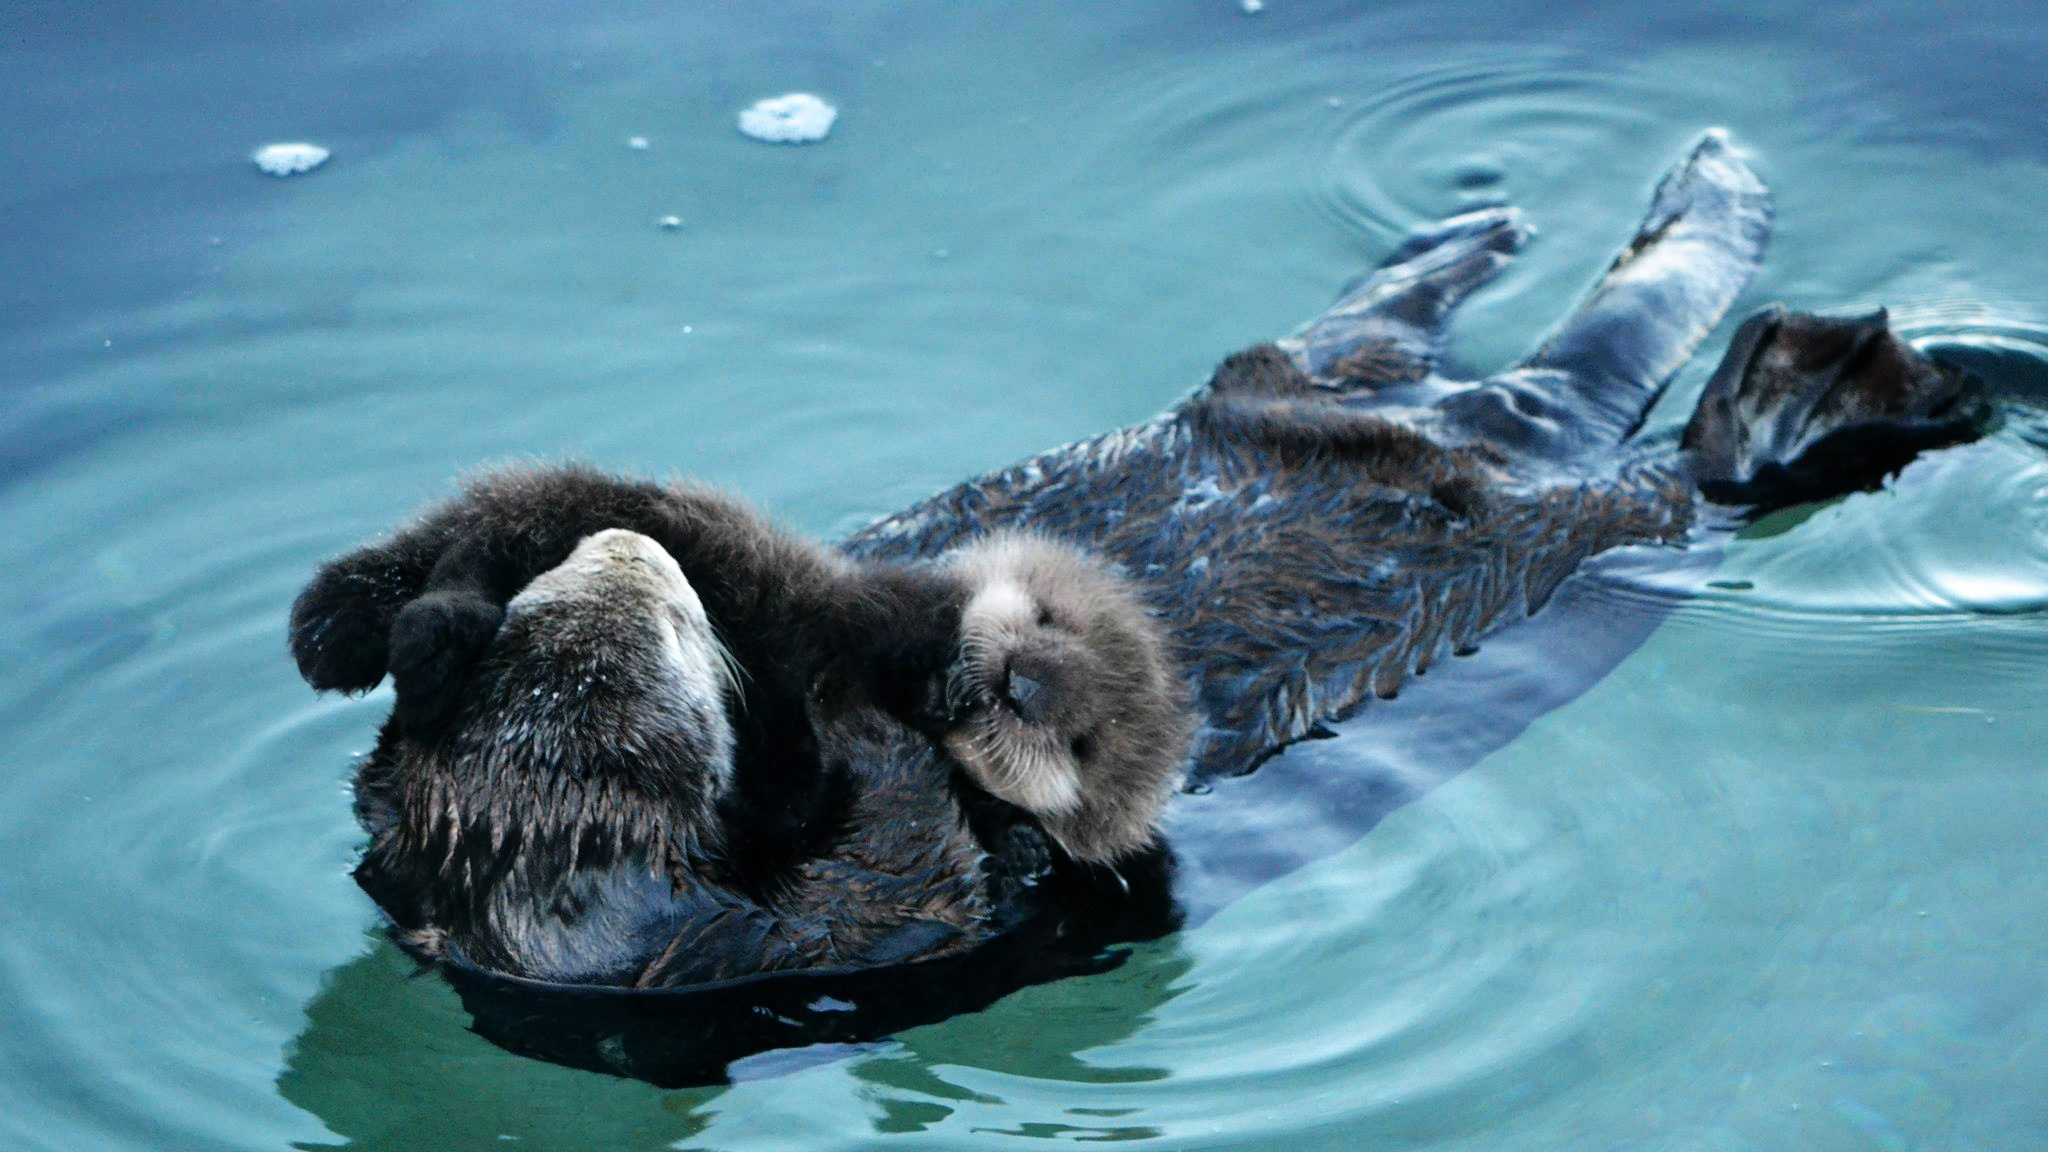 This duo was not part of the Monterey Bay Aquarium's sea otter den or Great Tide Pool. Rather, the wild mother and her brand new pup wandered into the tide pool from the ocean.